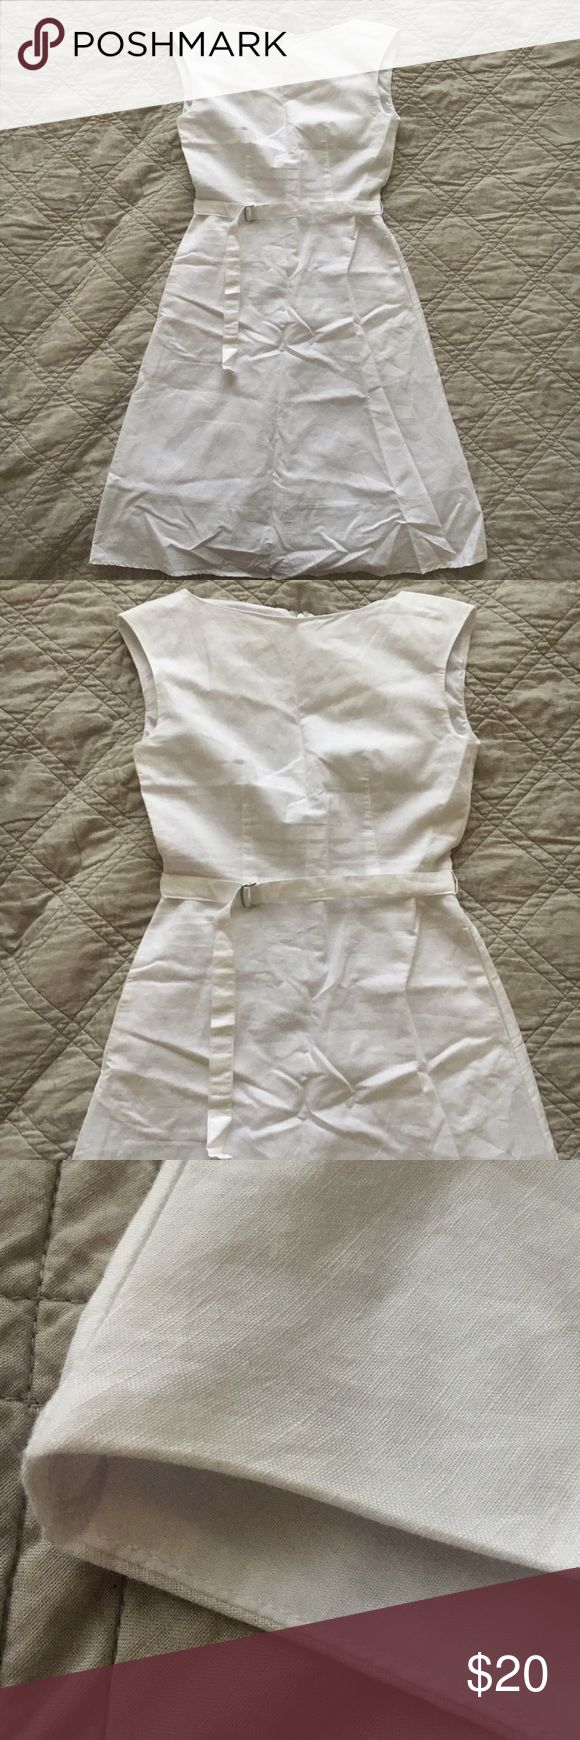 NWT! Uniqlo White Linen Dress I am selling this white linen dress from Uniqlo, size XS. Very pretty, flattering and good quality. Fully lined! The retail price is $39.90 and I got it on sale for $24.90. Brand New!!! But the chest is too small for me so I'm selling it. The measurements and composition are on the tag. Ask if you have more questions! 💕 Uniqlo Dresses Midi